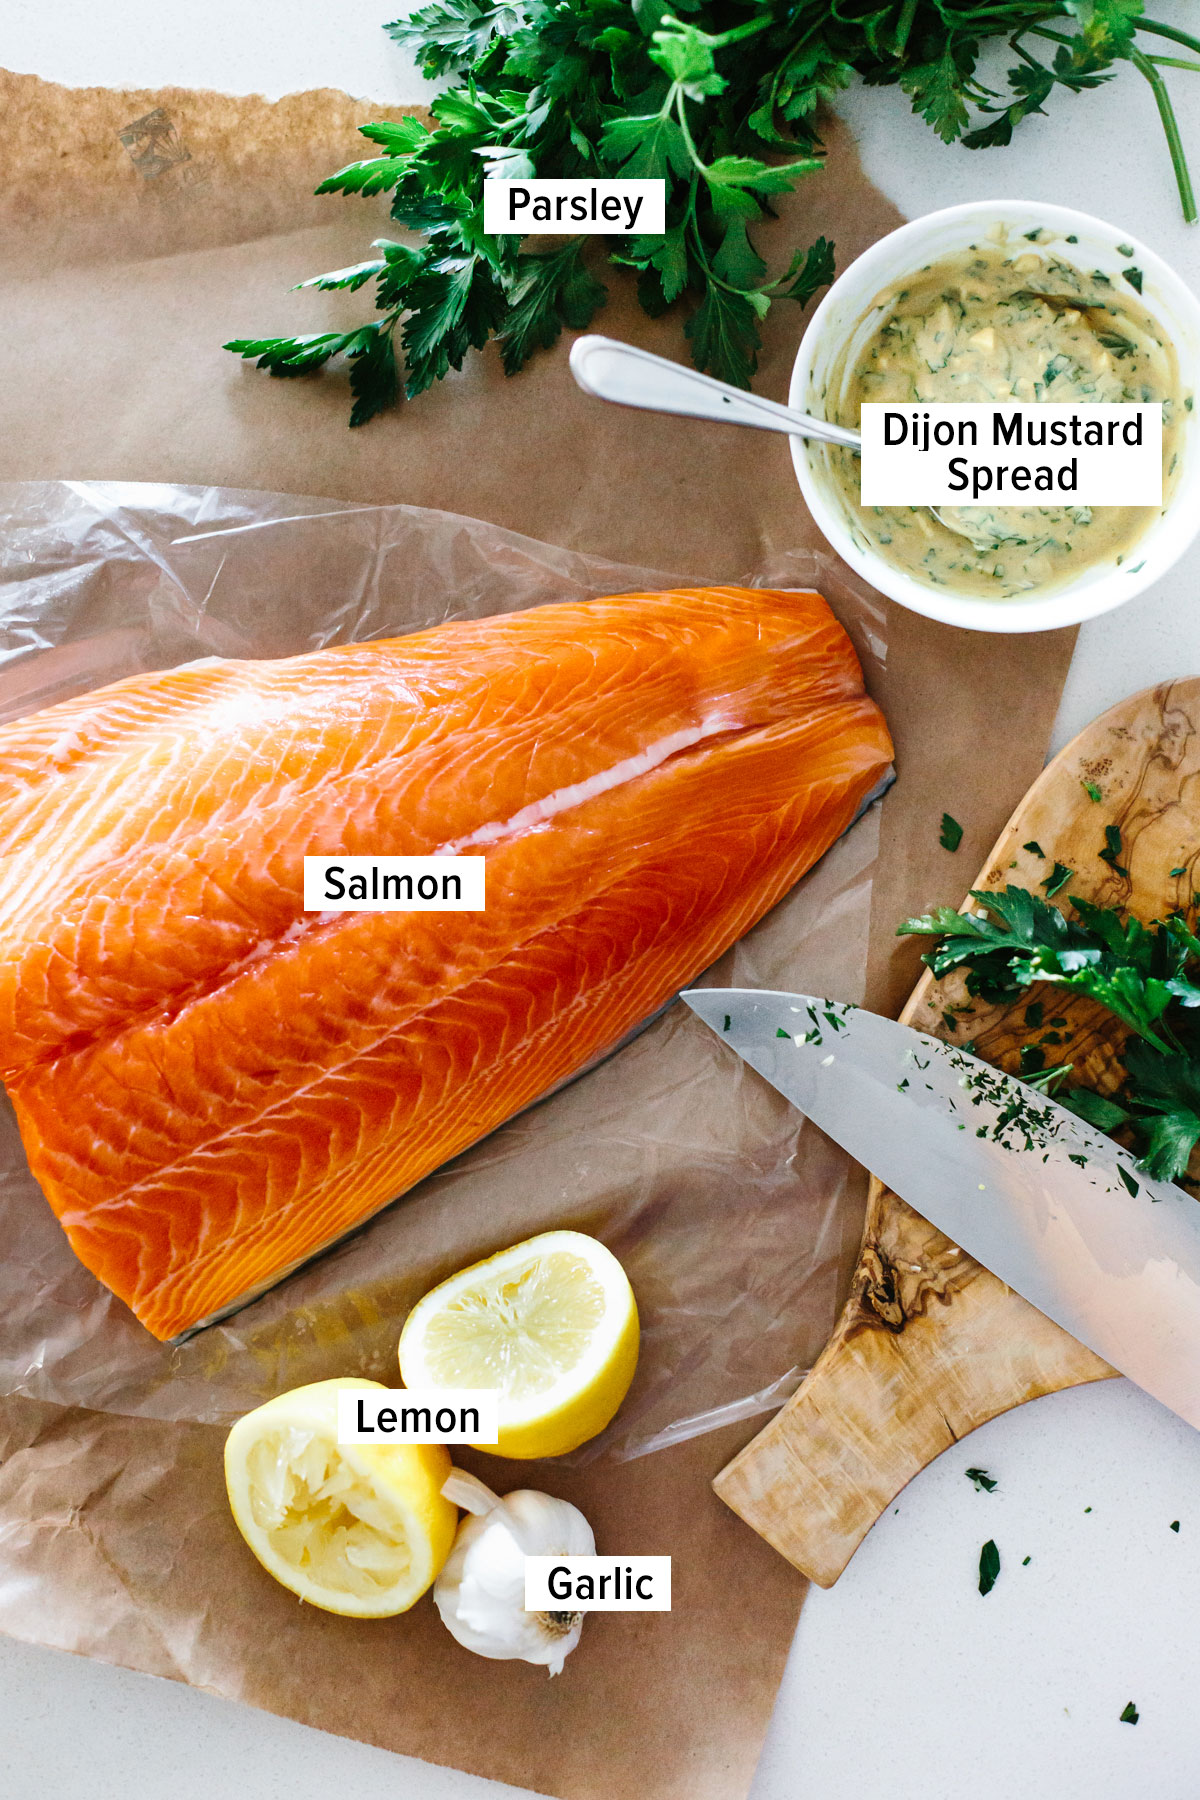 Ingredients to make Dijon baked salmon on a table.